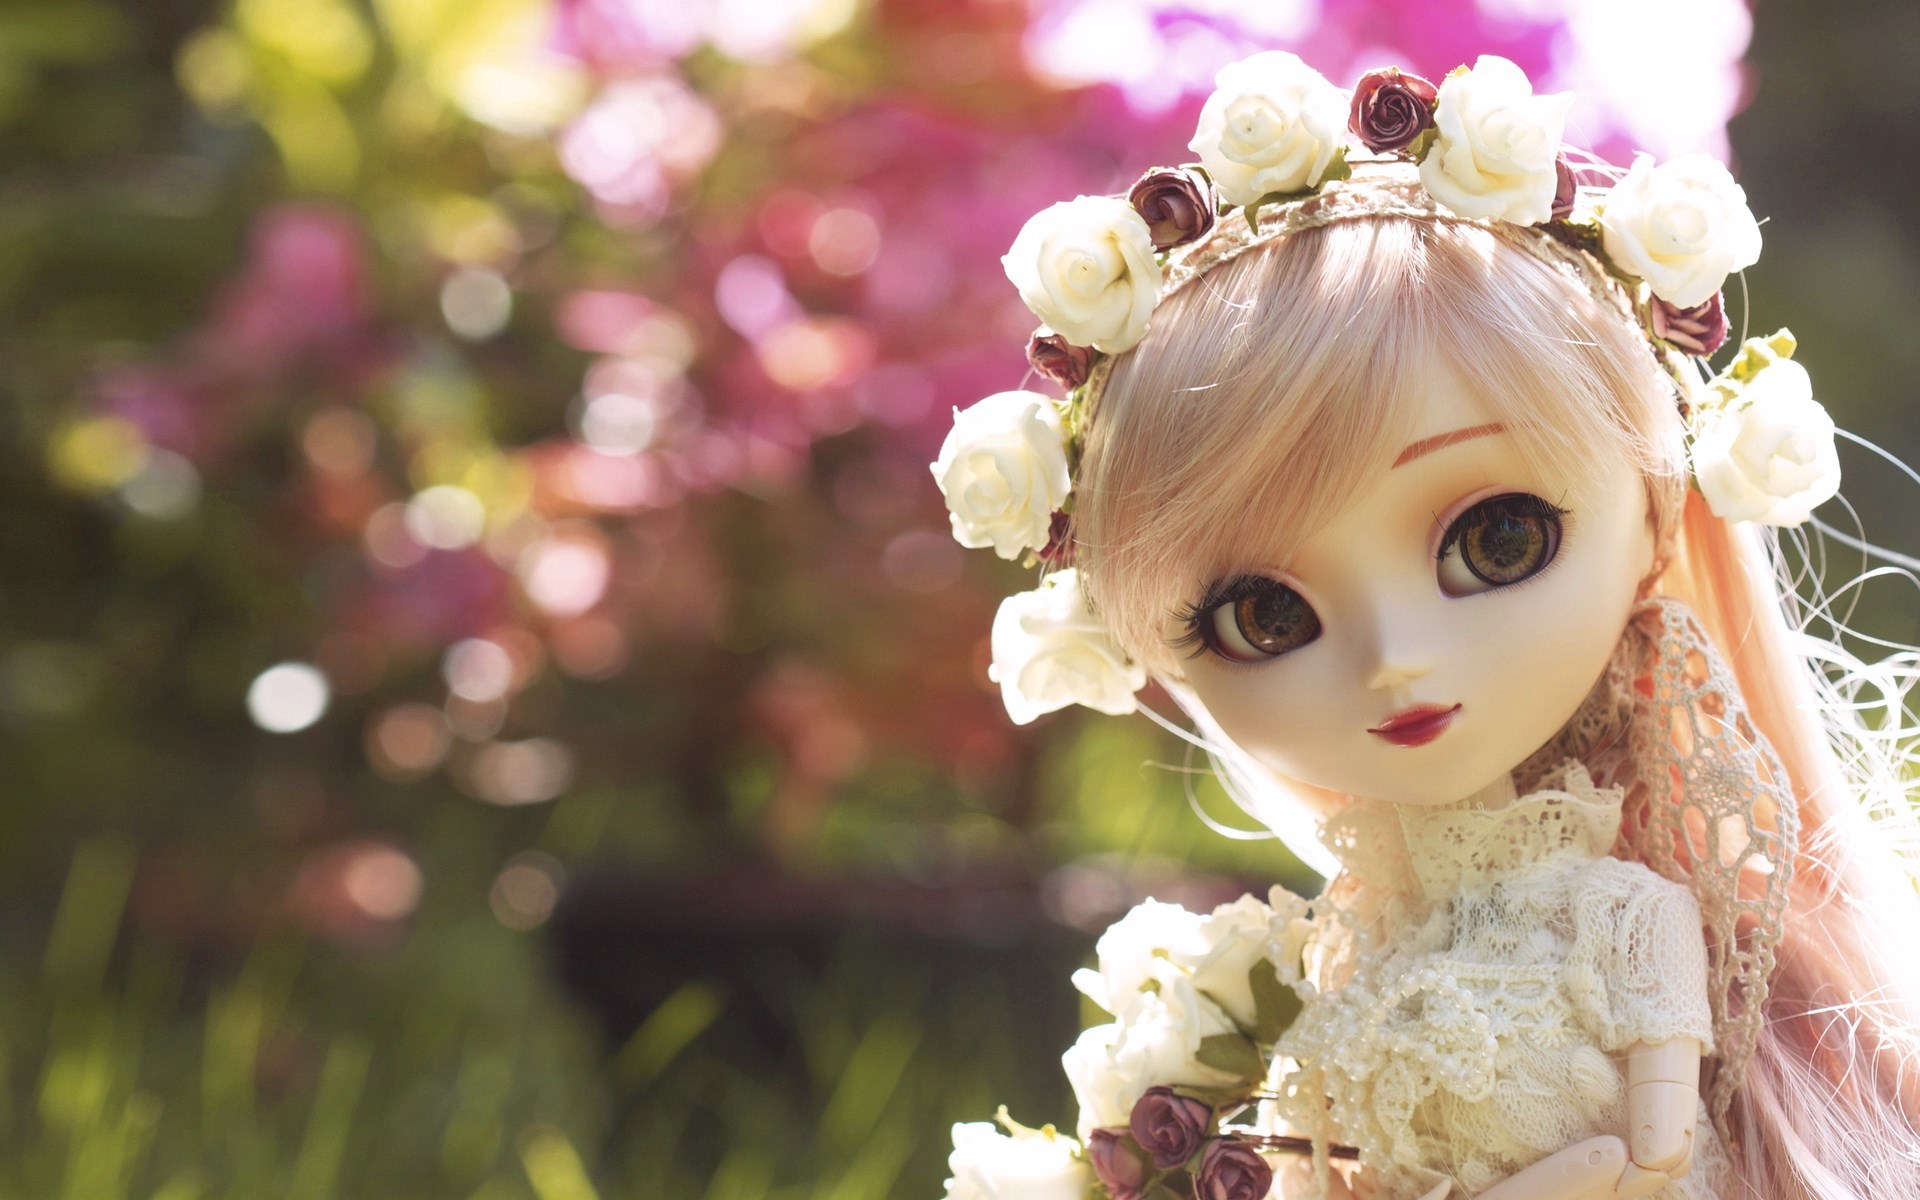 Toy Doll Wallpapers